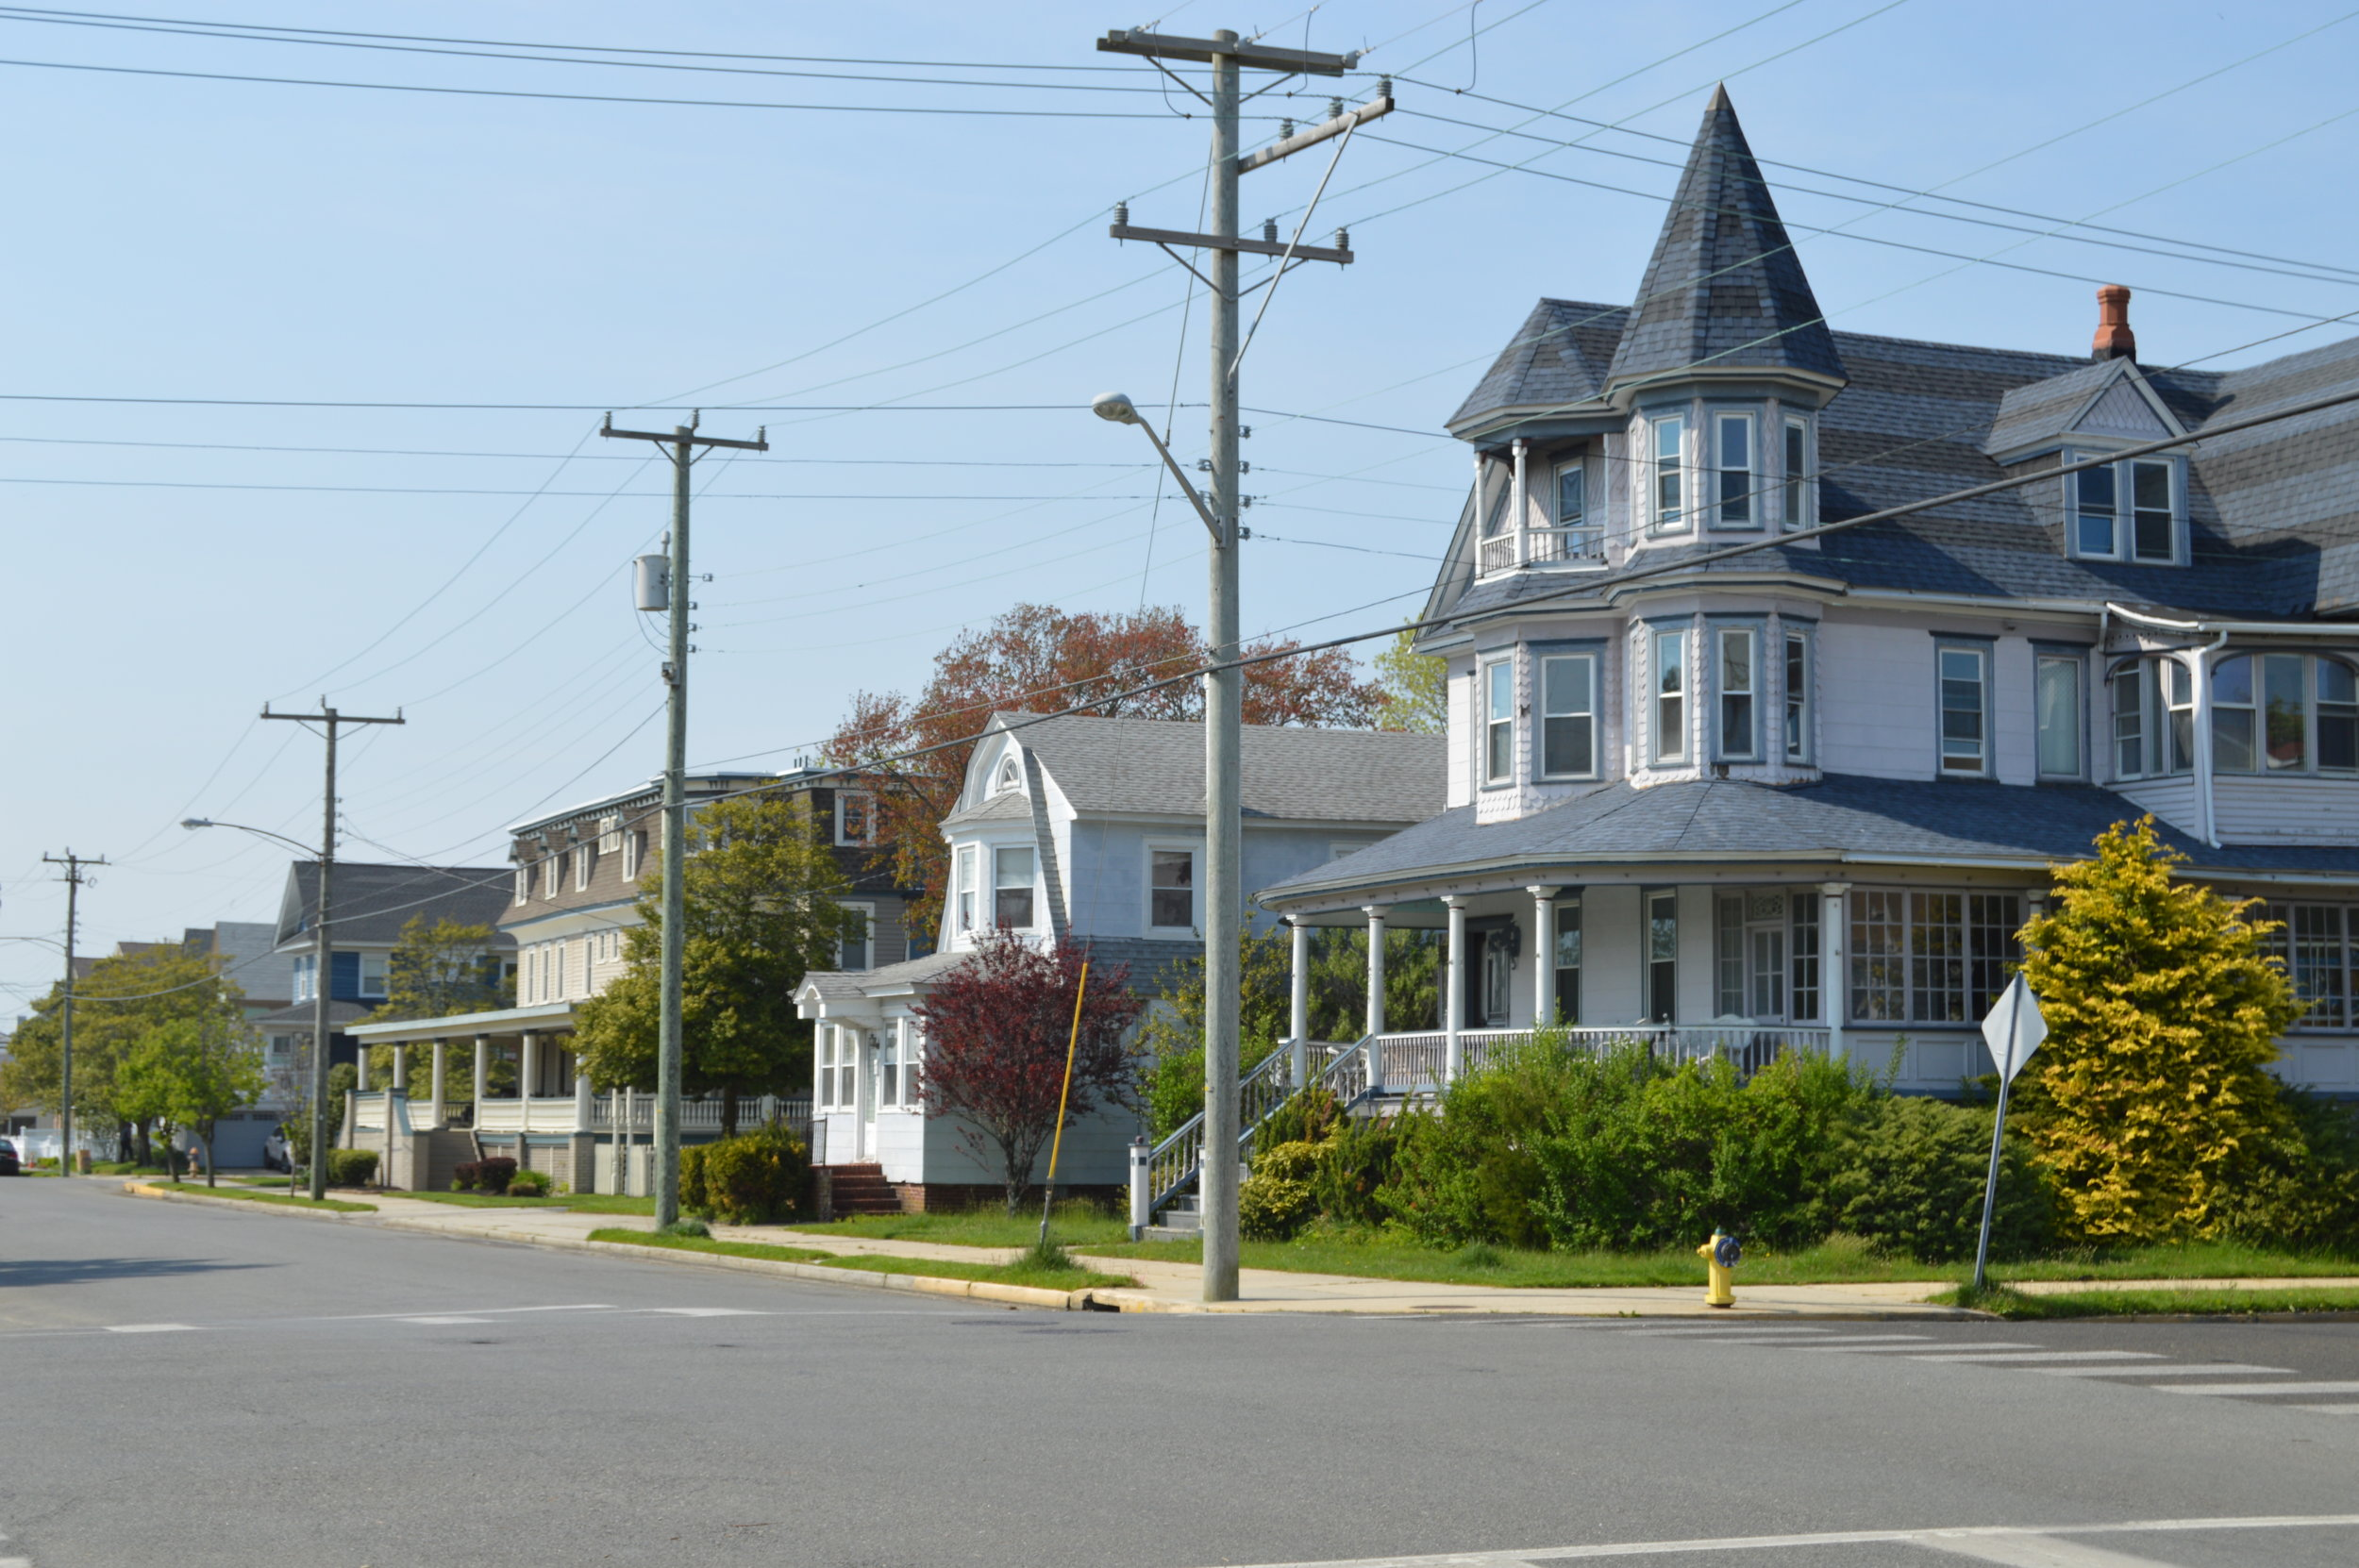 Ocean City Historic District Streetscape.JPG